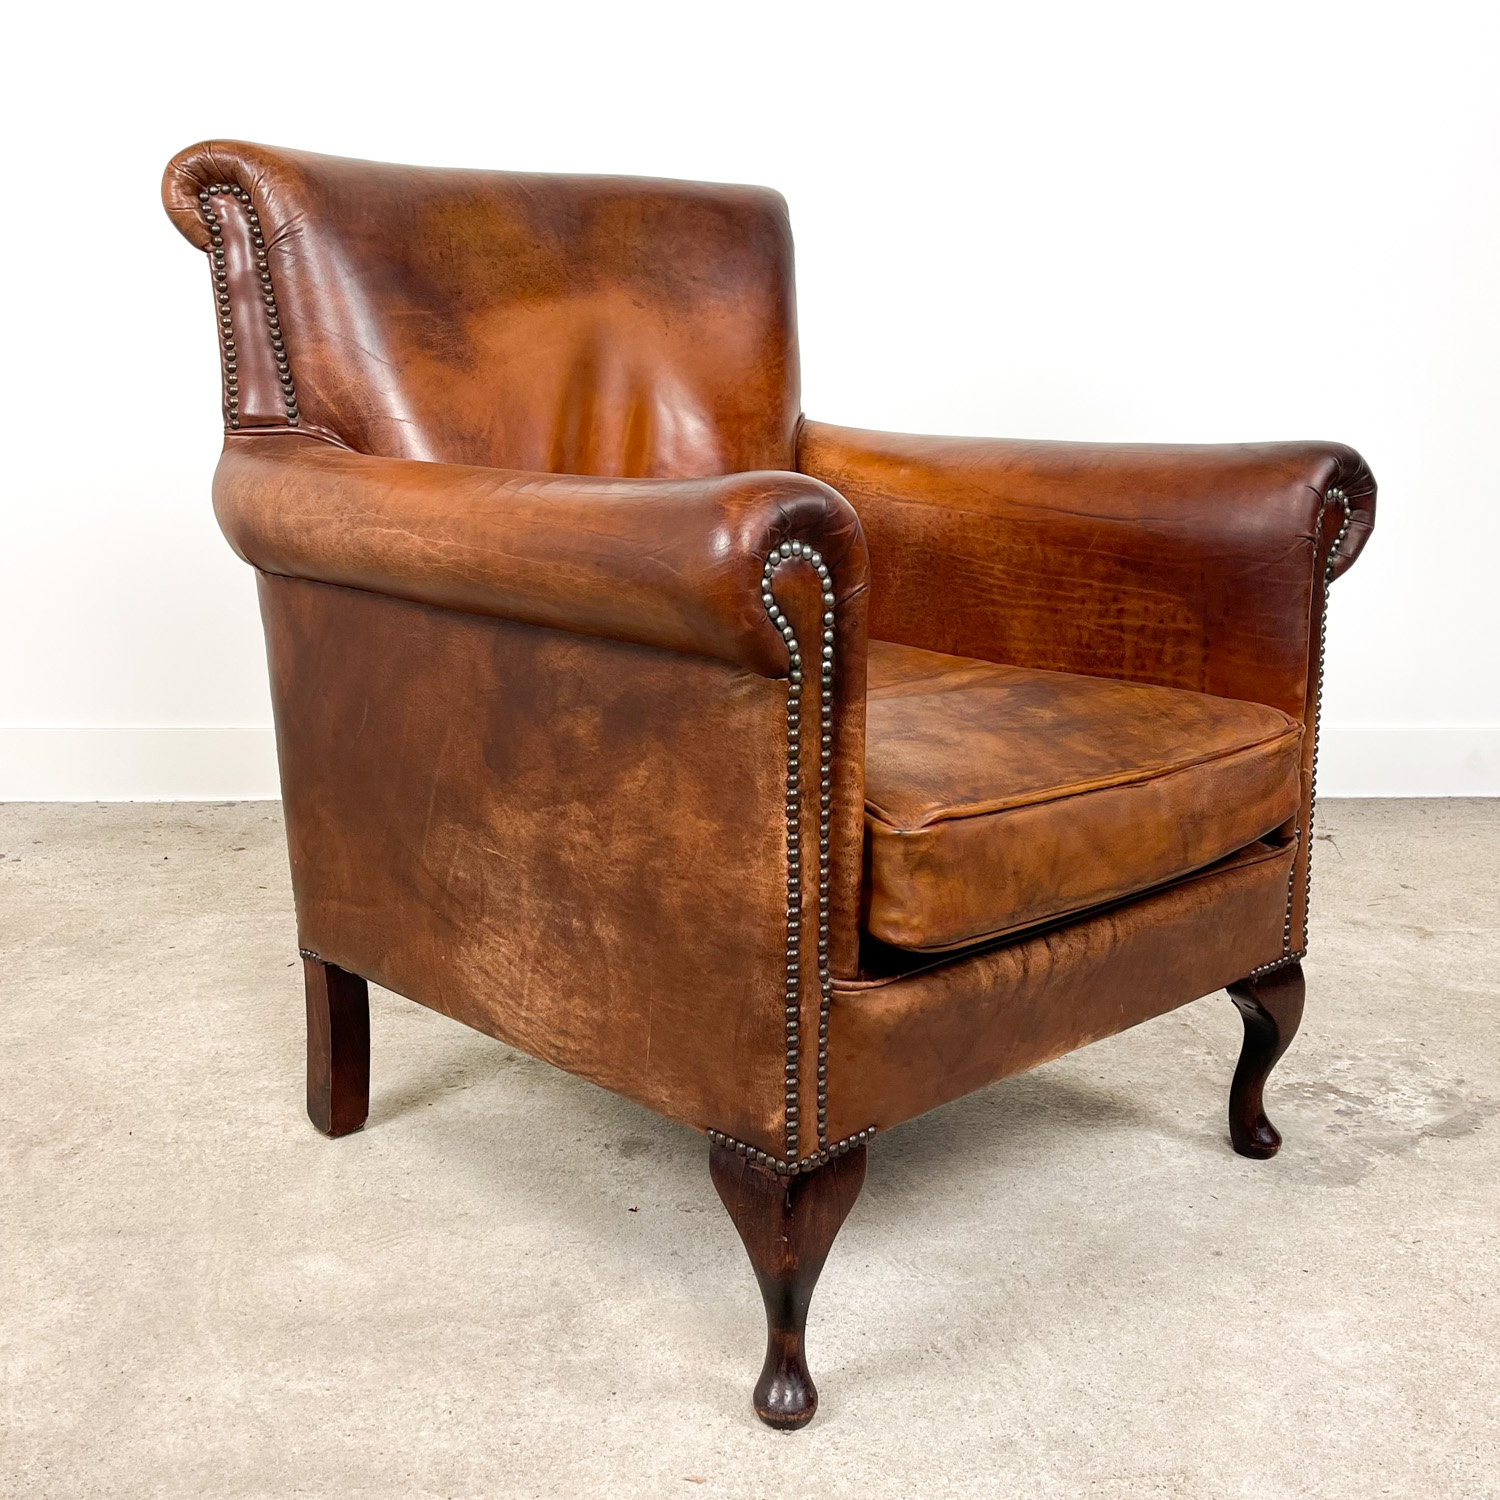 Big vintage sheep leather armchair